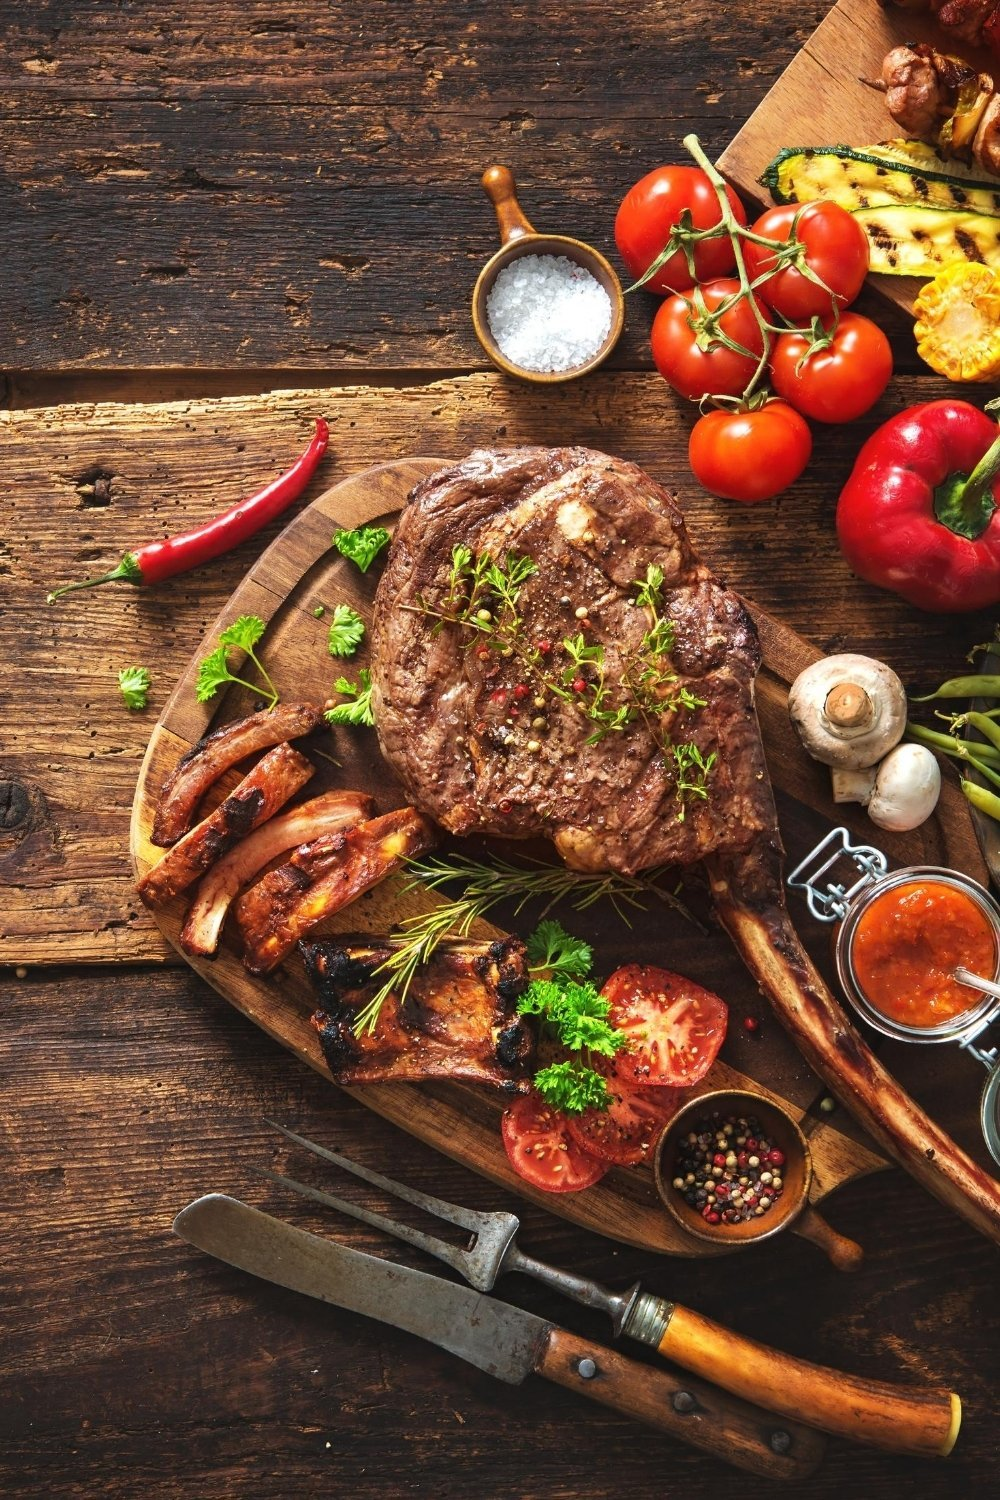 Naturally gluten free home-cooked meat cuts